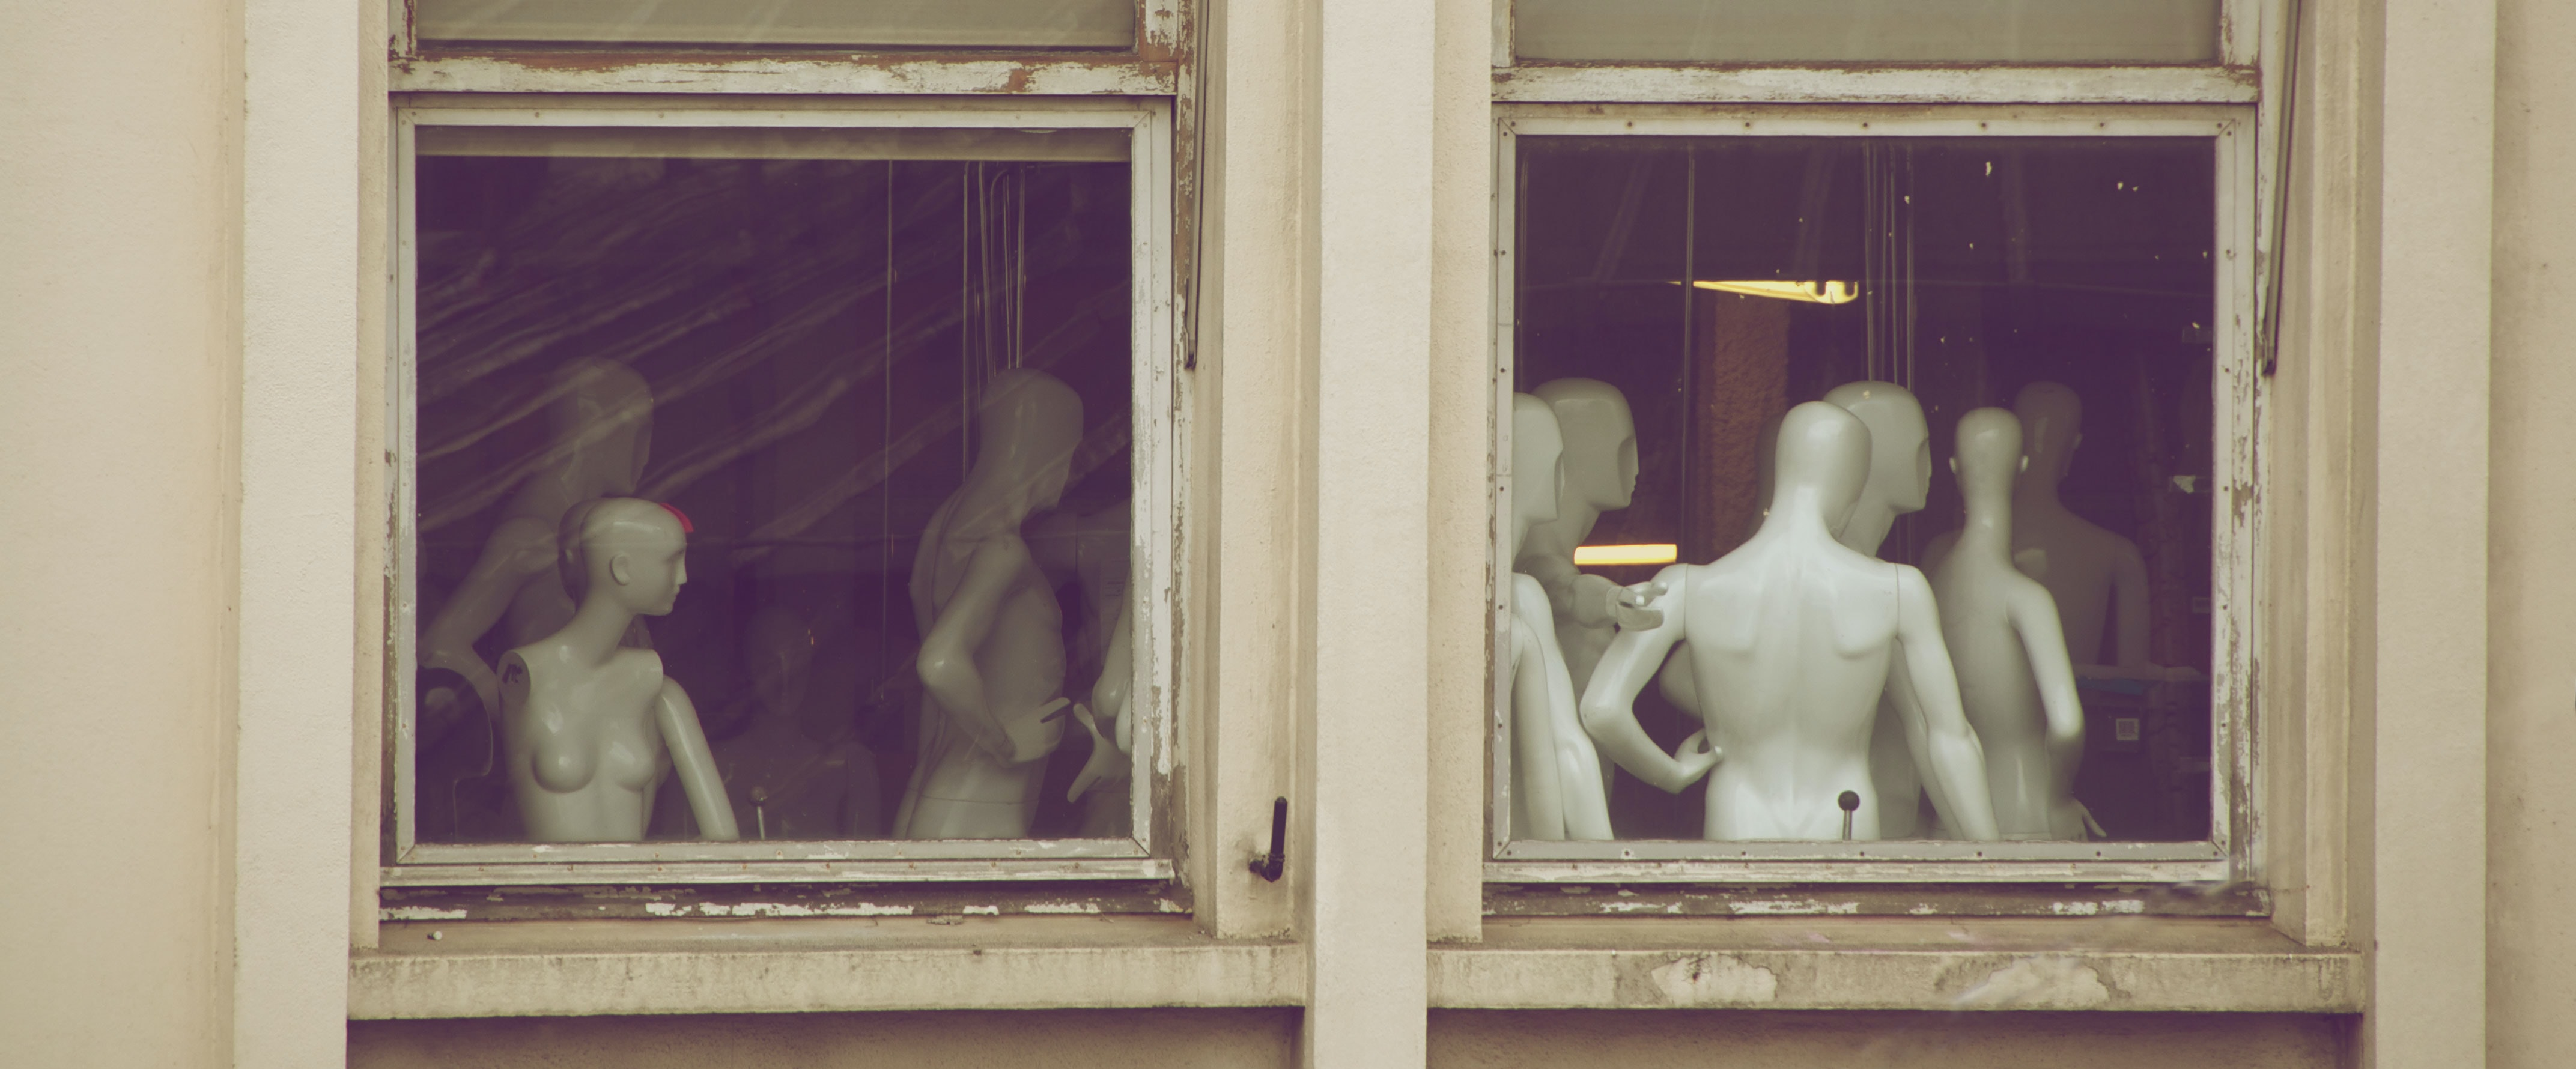 white torso mannequin near window